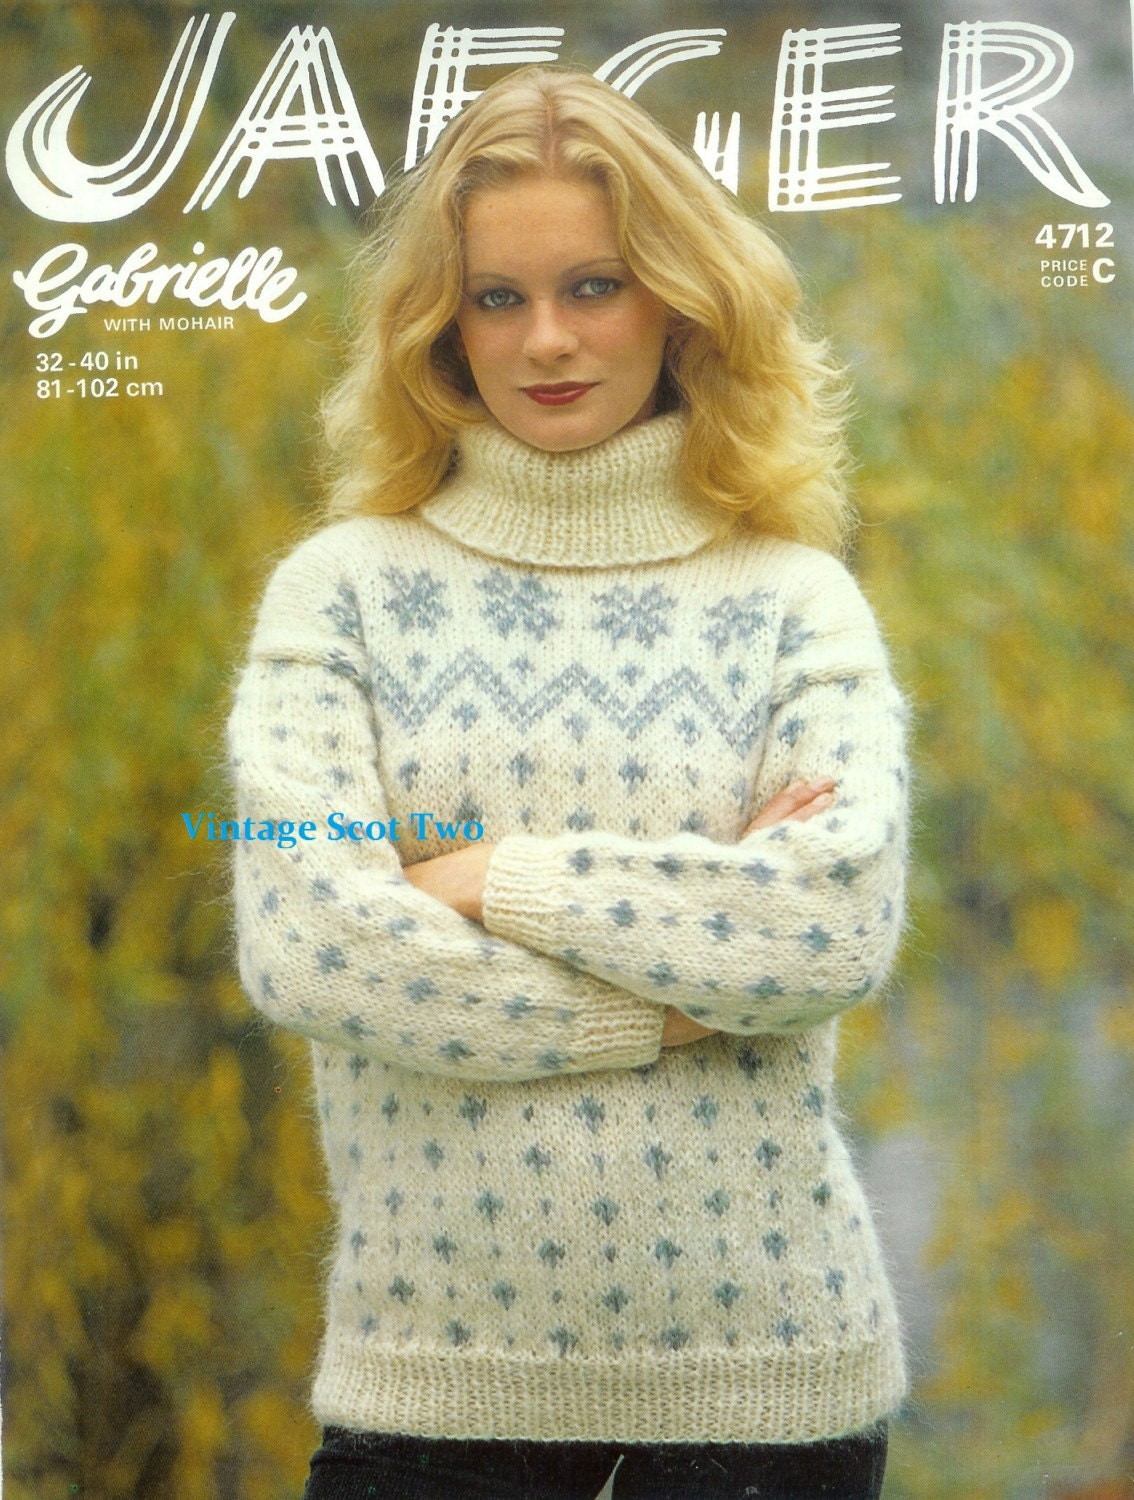 Knitting pattern of pullover from mohair with knitting needles. We will teach everyone to knit their own mohair pullover